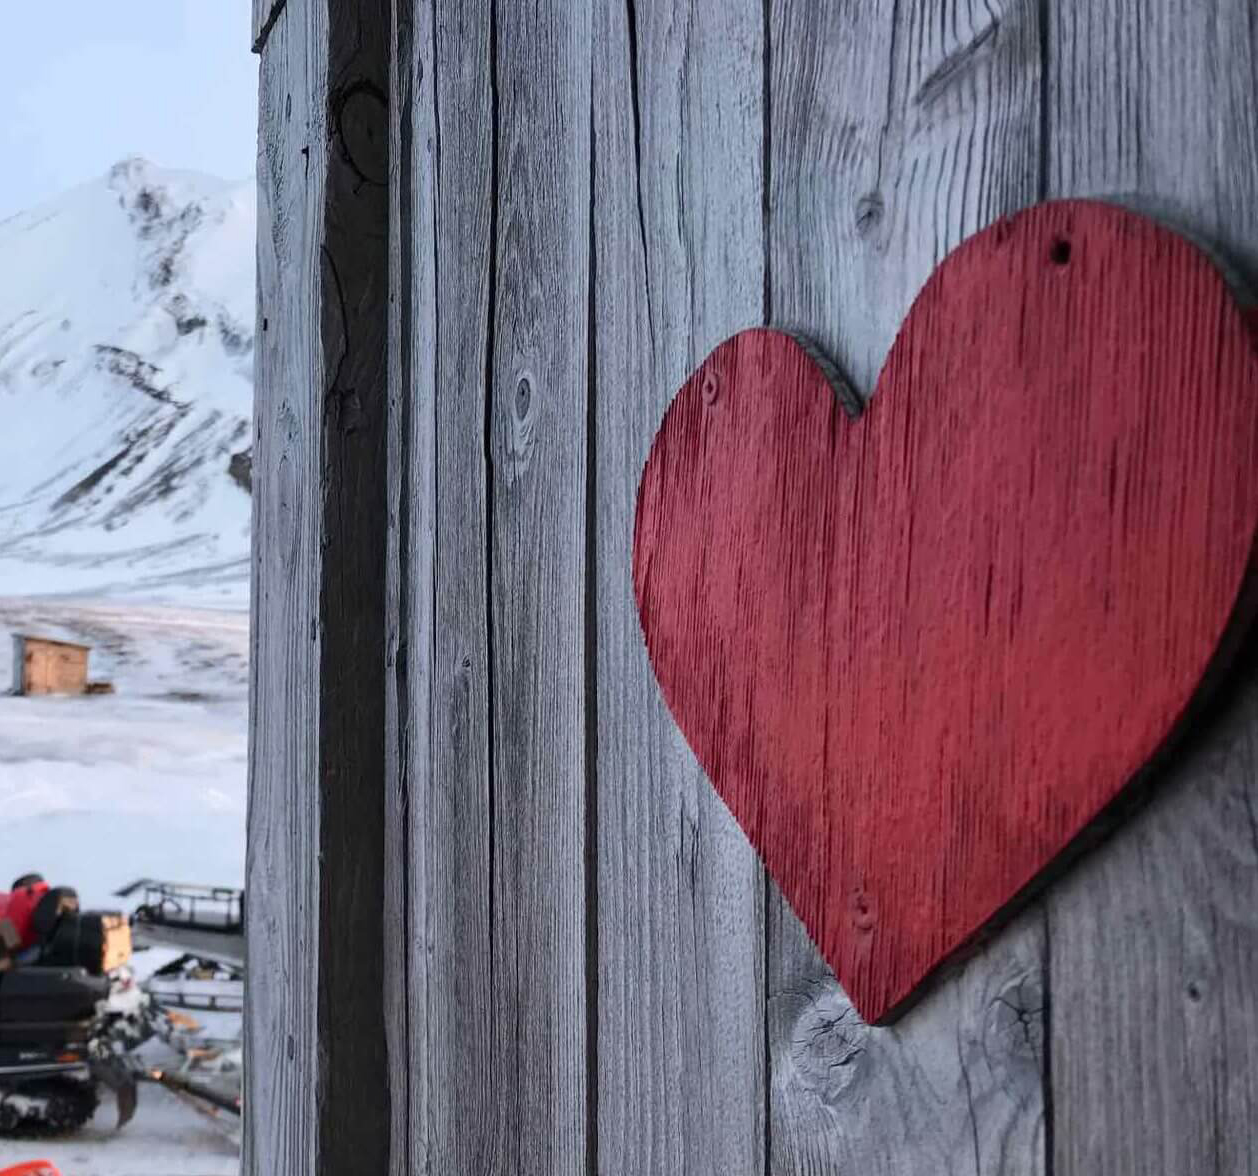 515b_hearts-in-the-ice_small